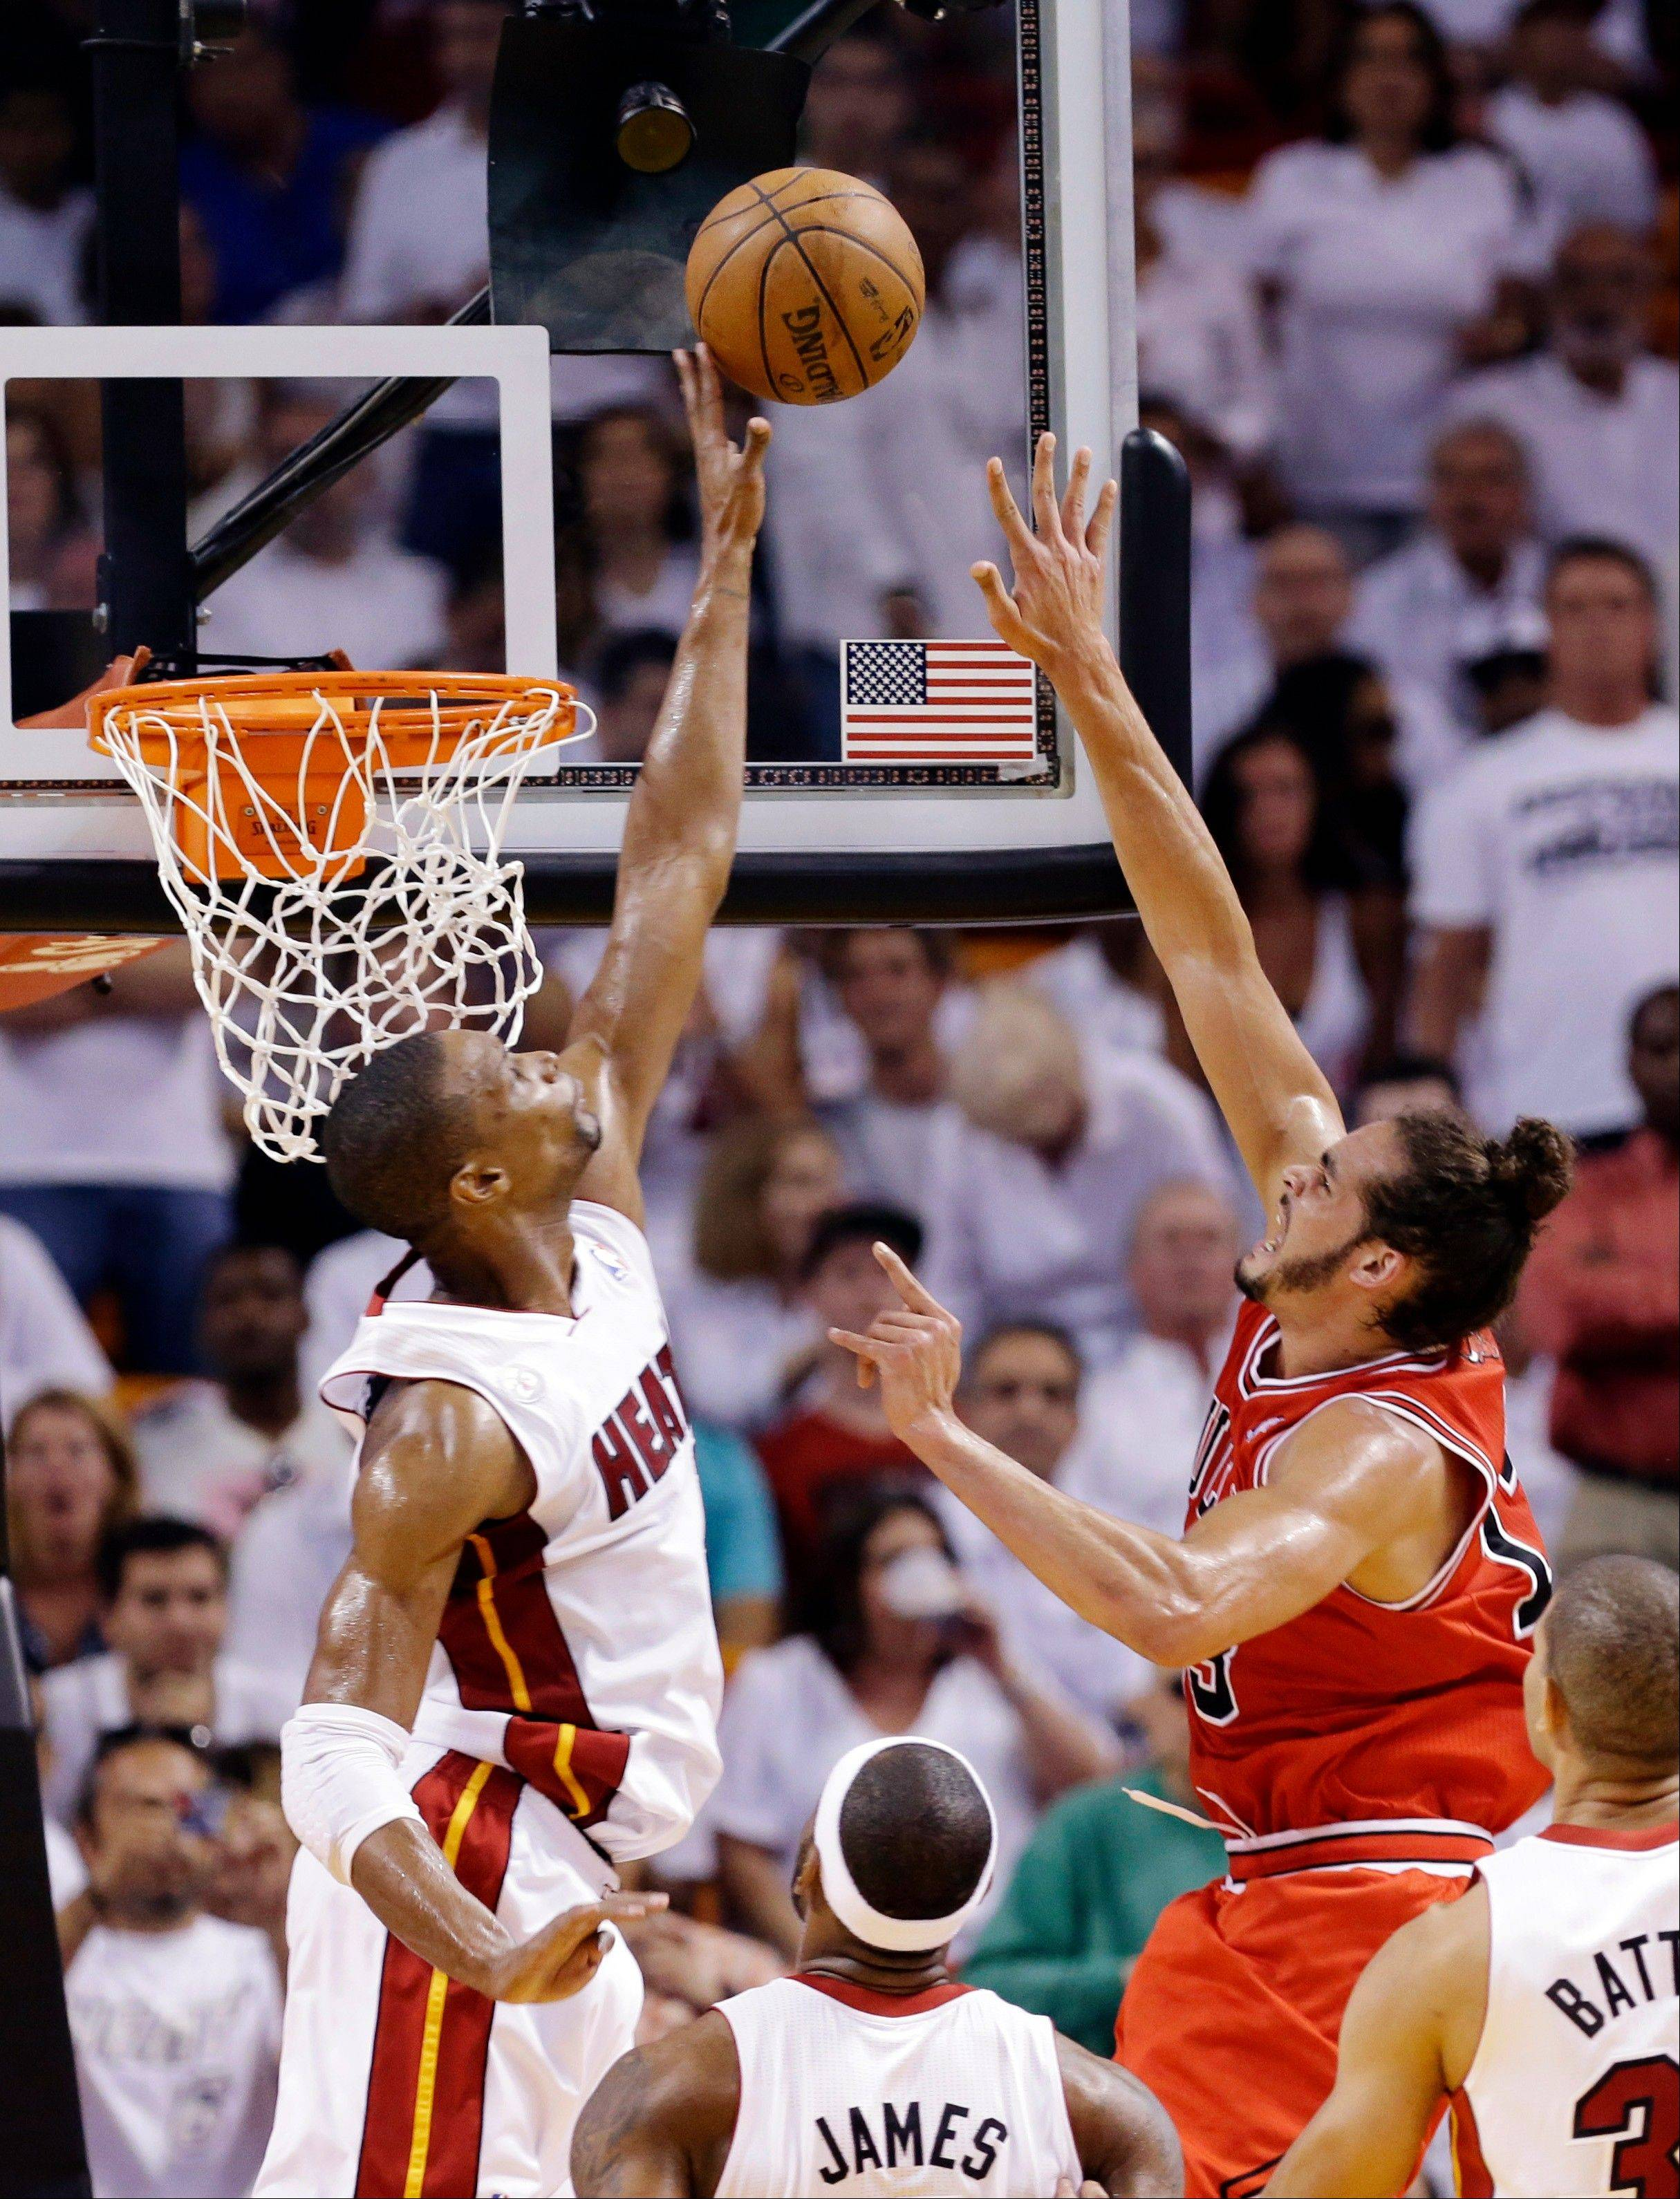 Miami Heat center Chris Bosh, left, blocks a shot by Bulls center Joakim Noah Wednesday night in Miami. The Heat won 115-78.